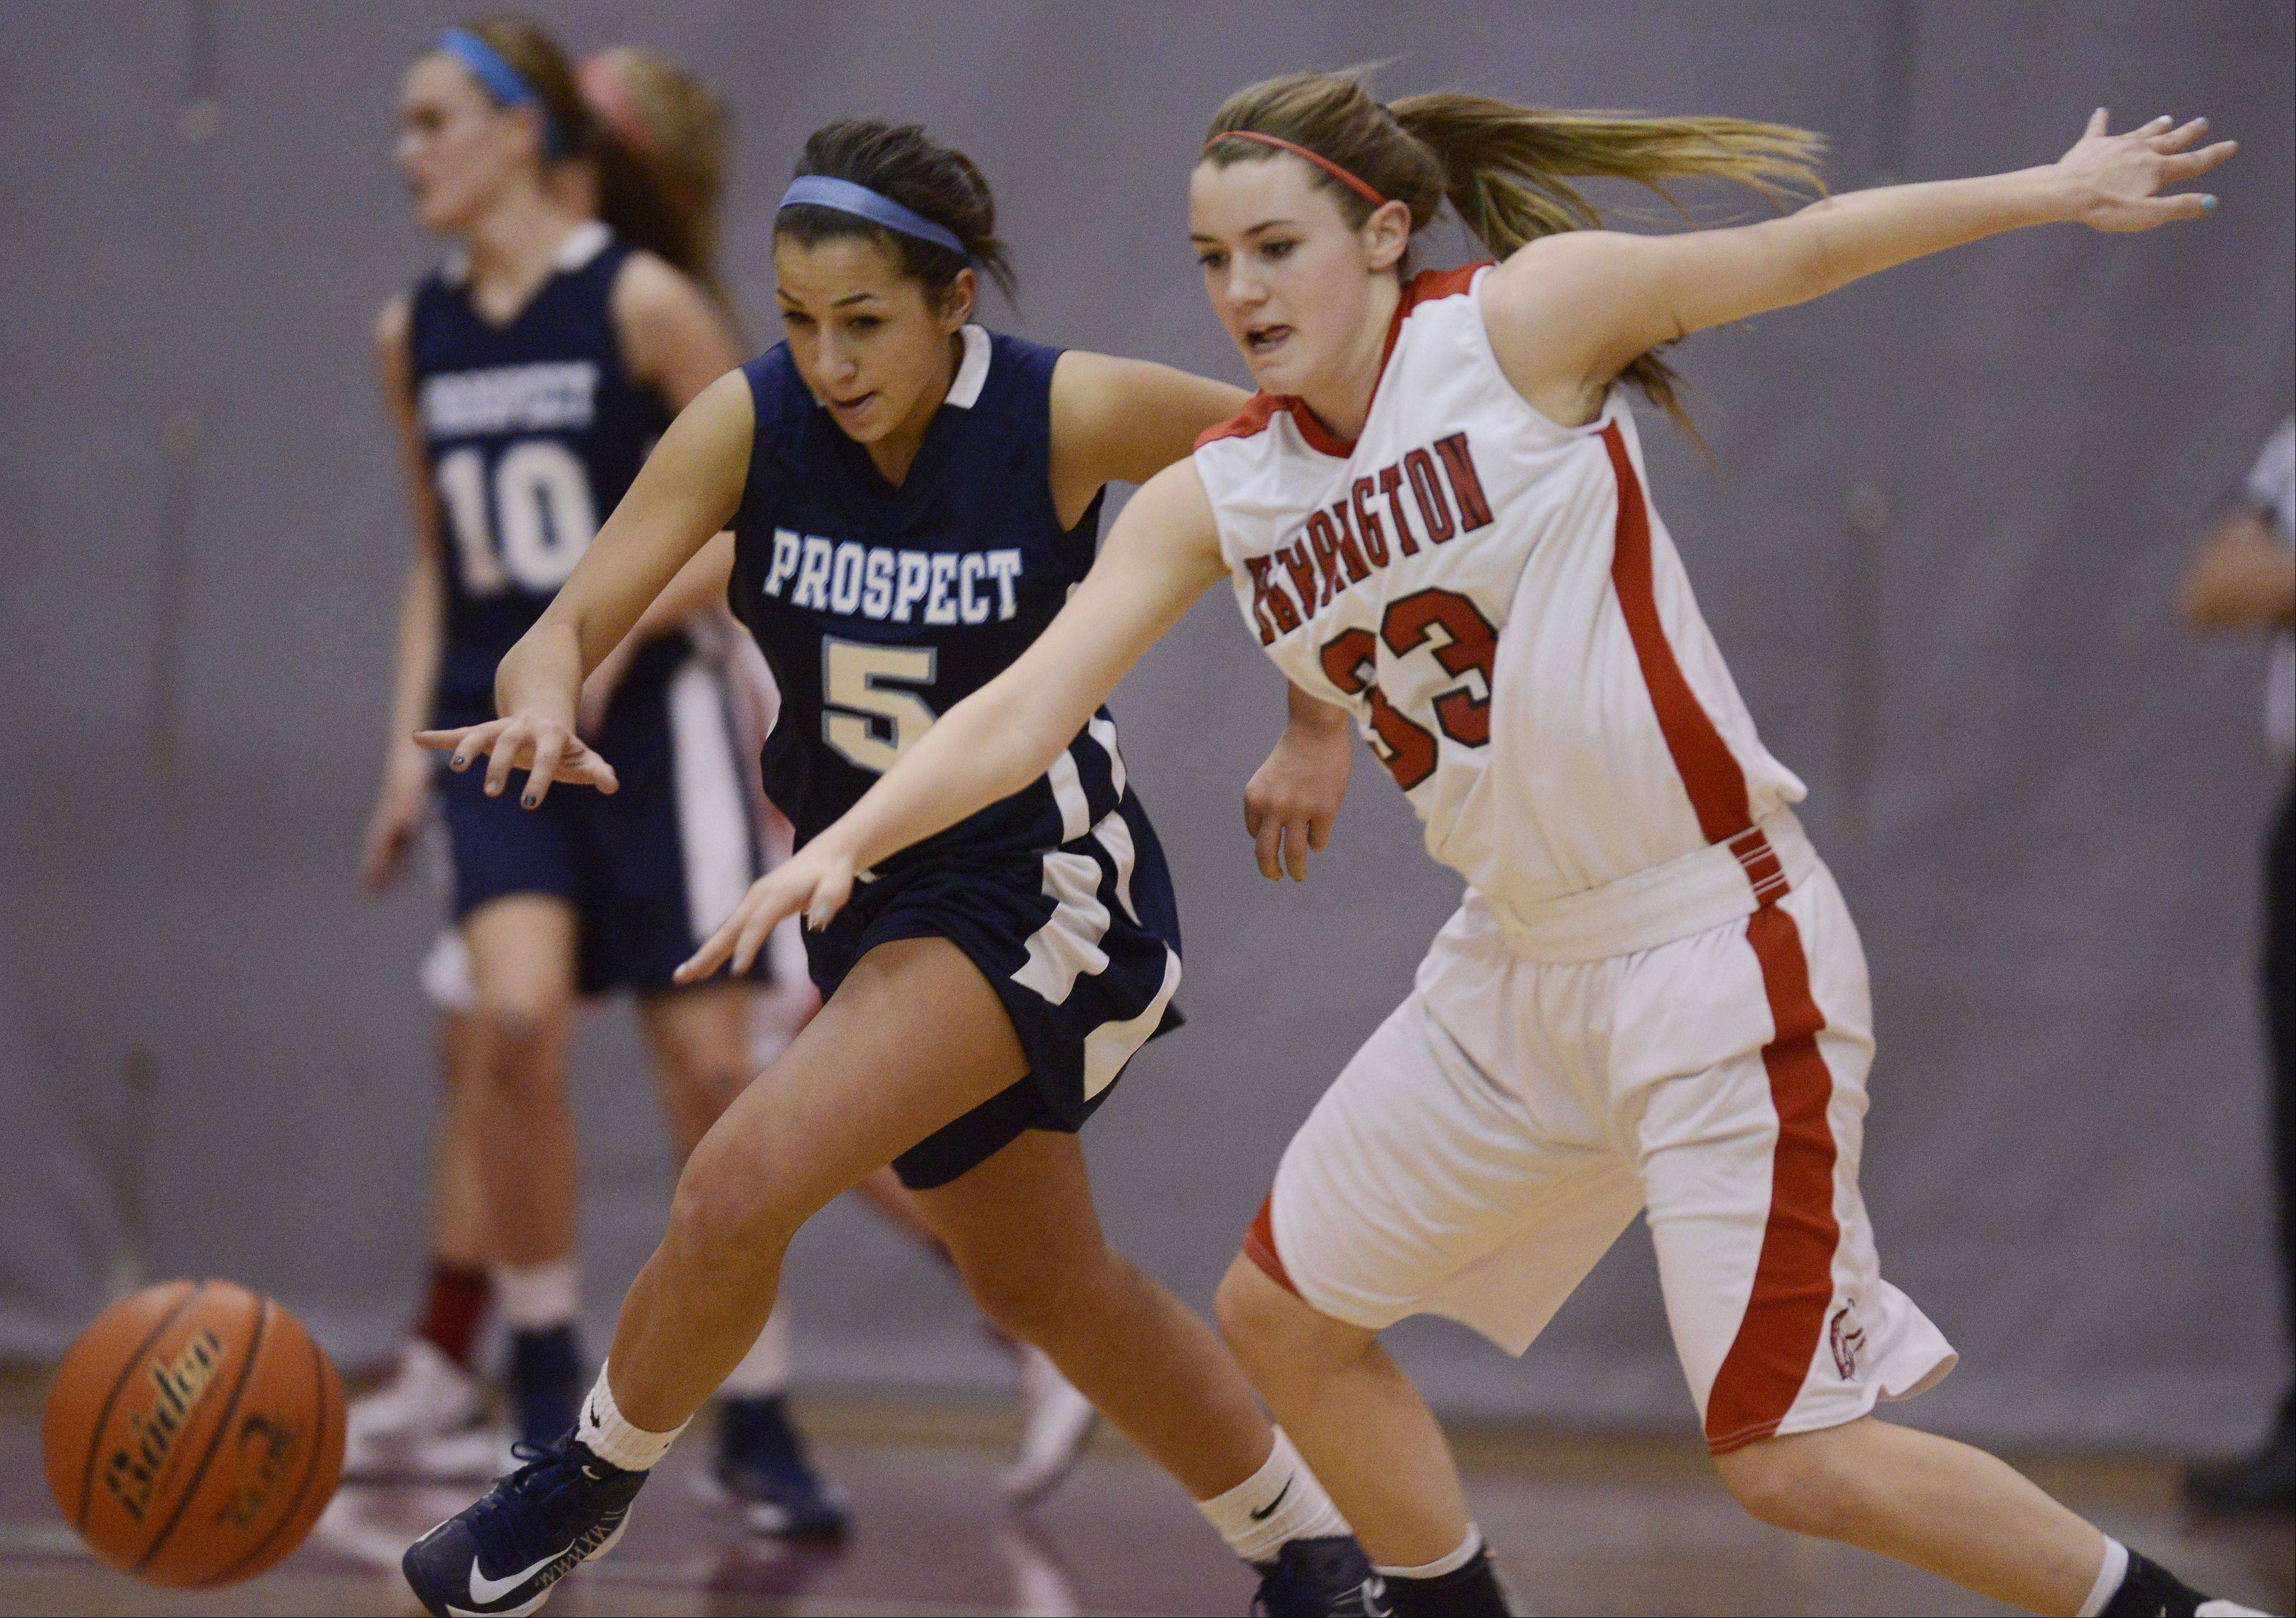 Prospect's Kristen Frasco, left, tries to steal the ball from Barrington's Angie Kirchoff but is called for a foul during Tuesday's game.